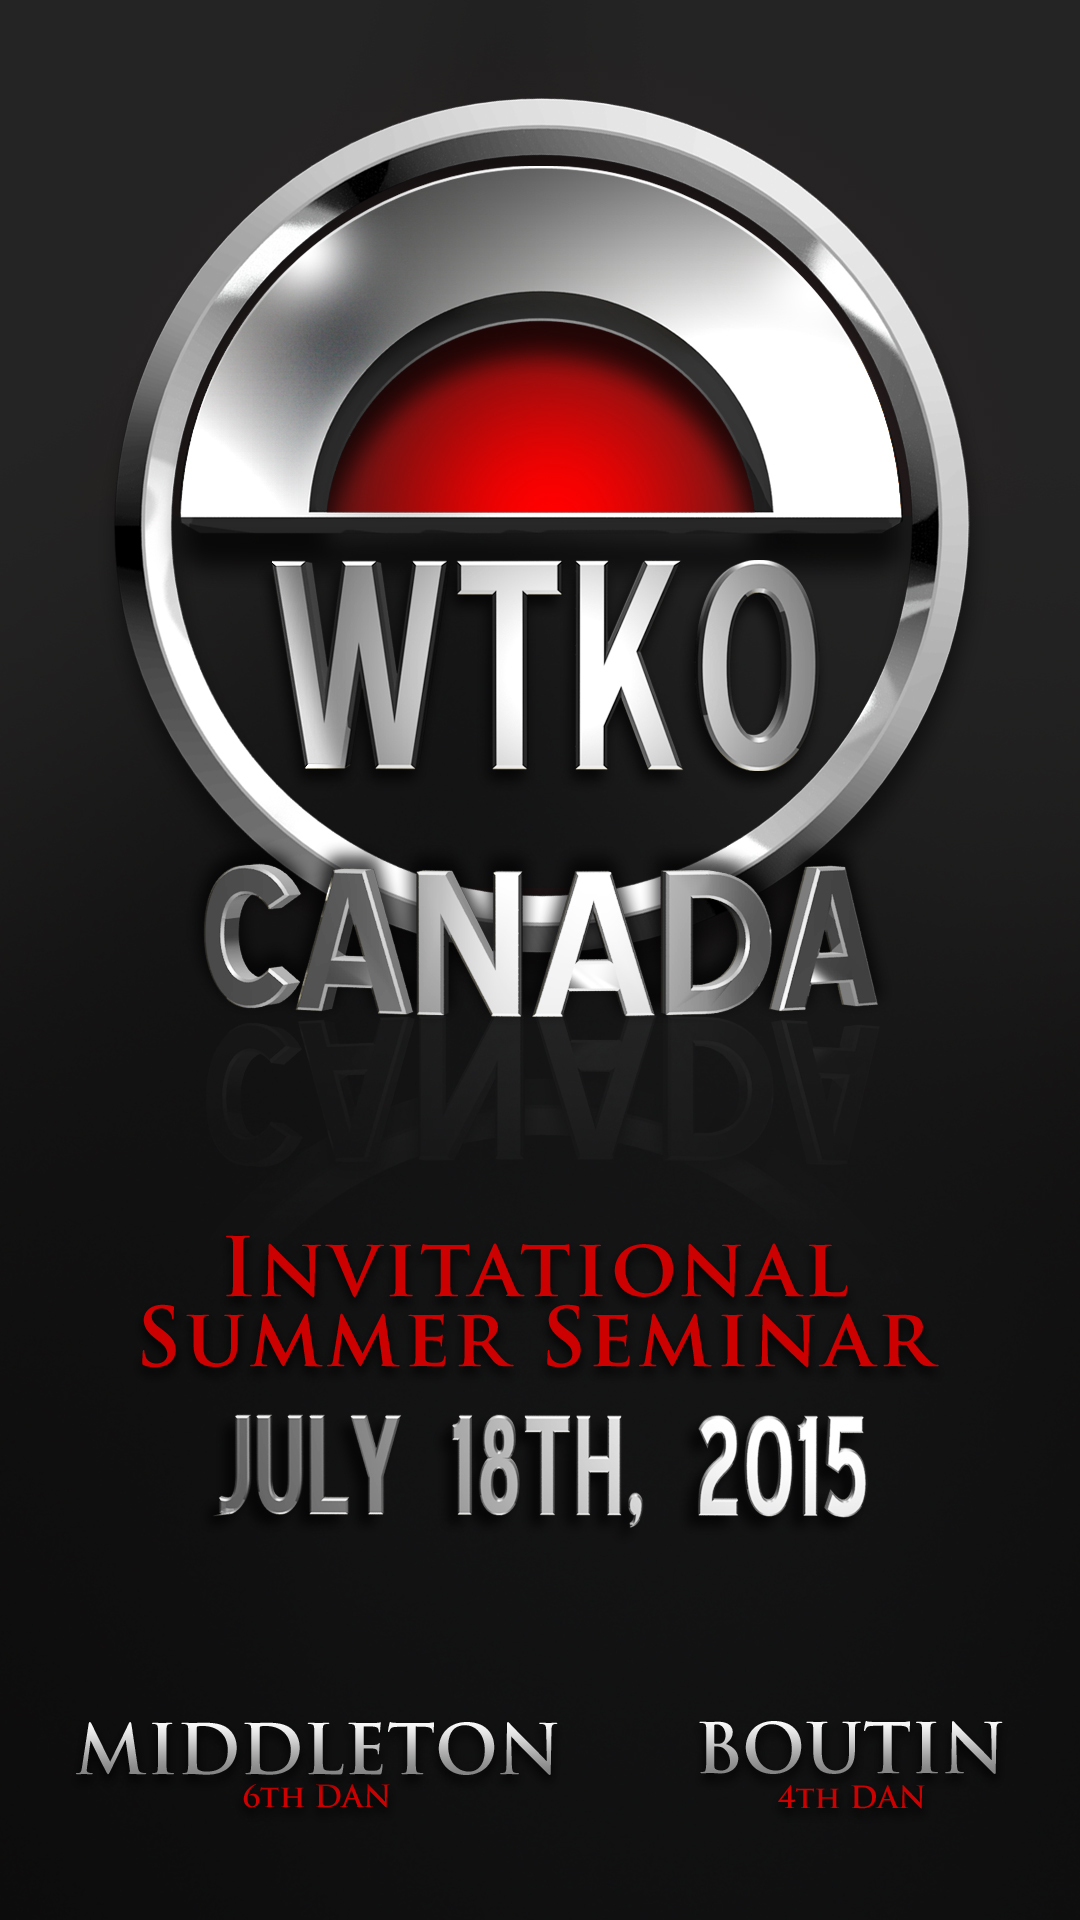 2015 WTKO Canada Invitational Summer Seminar